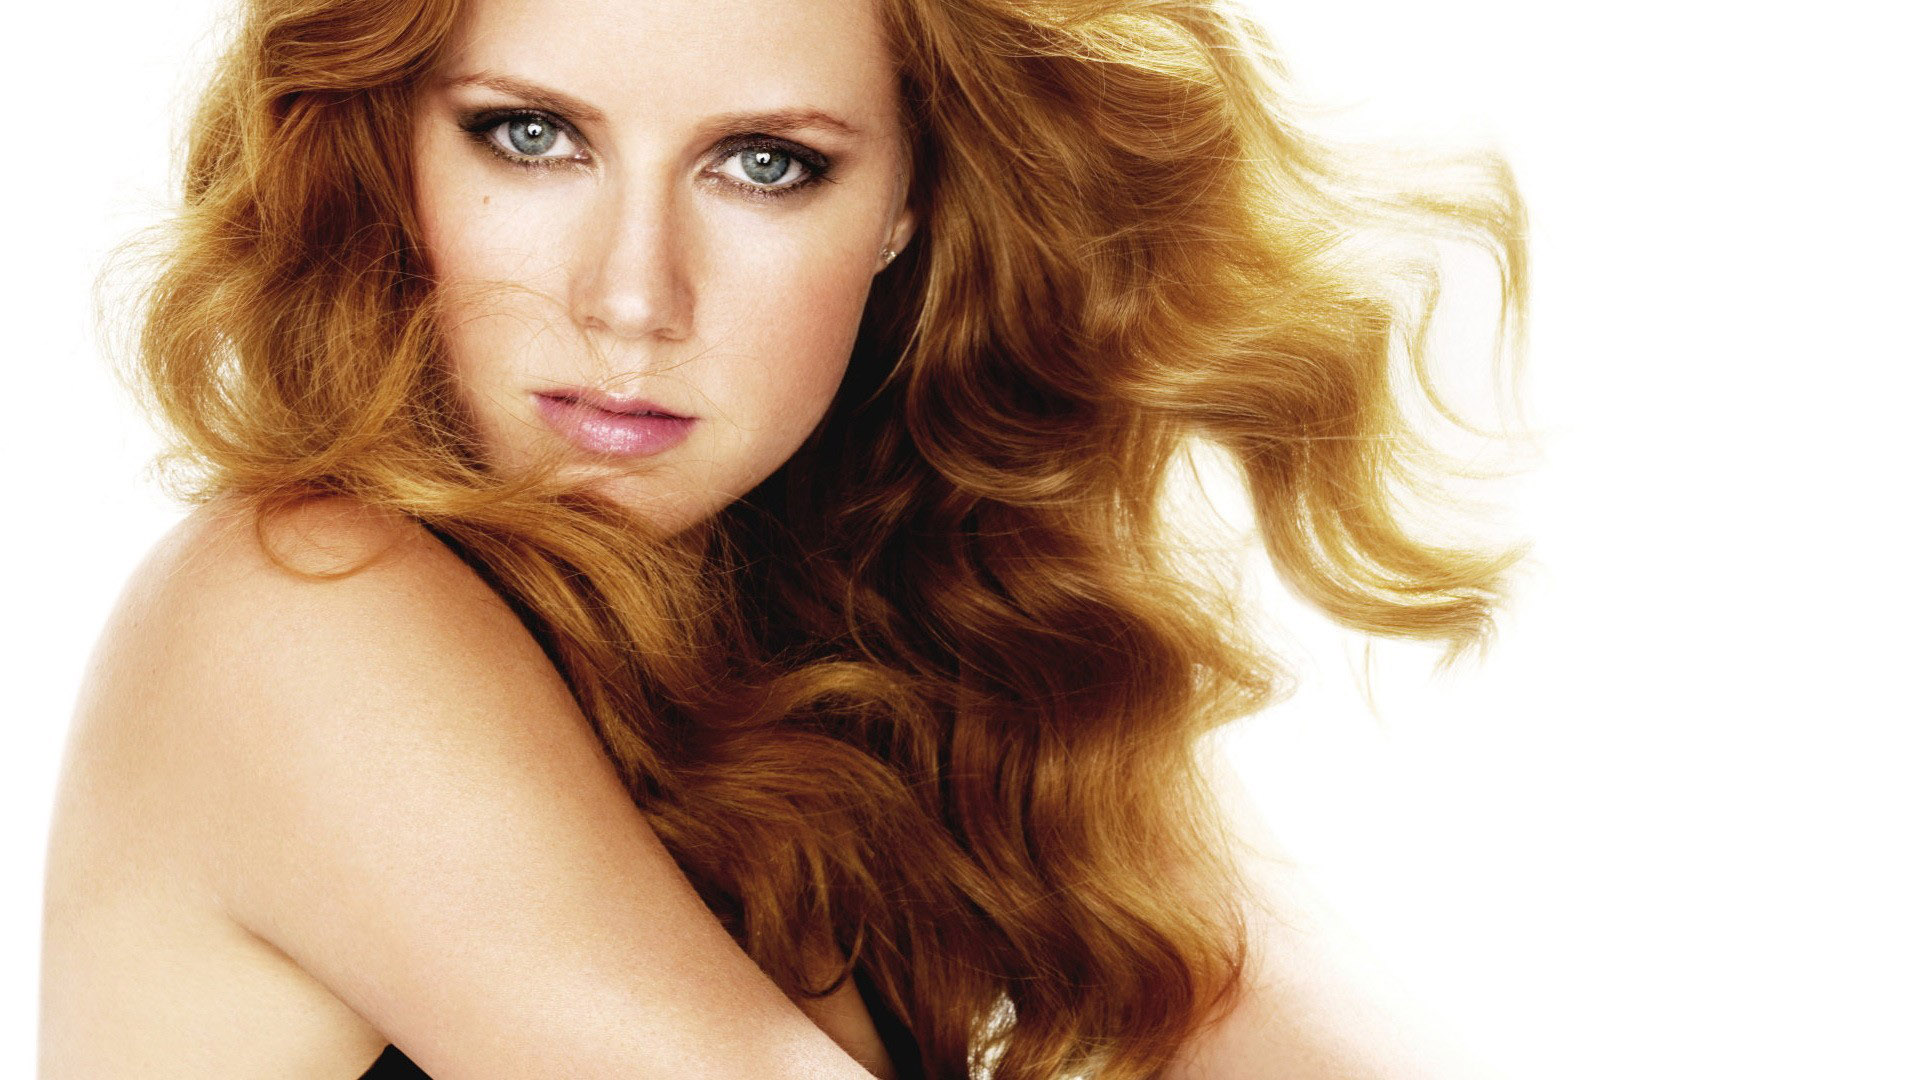 beauty amy adams wonderful still pose background mobile desktop wallpaper free hd